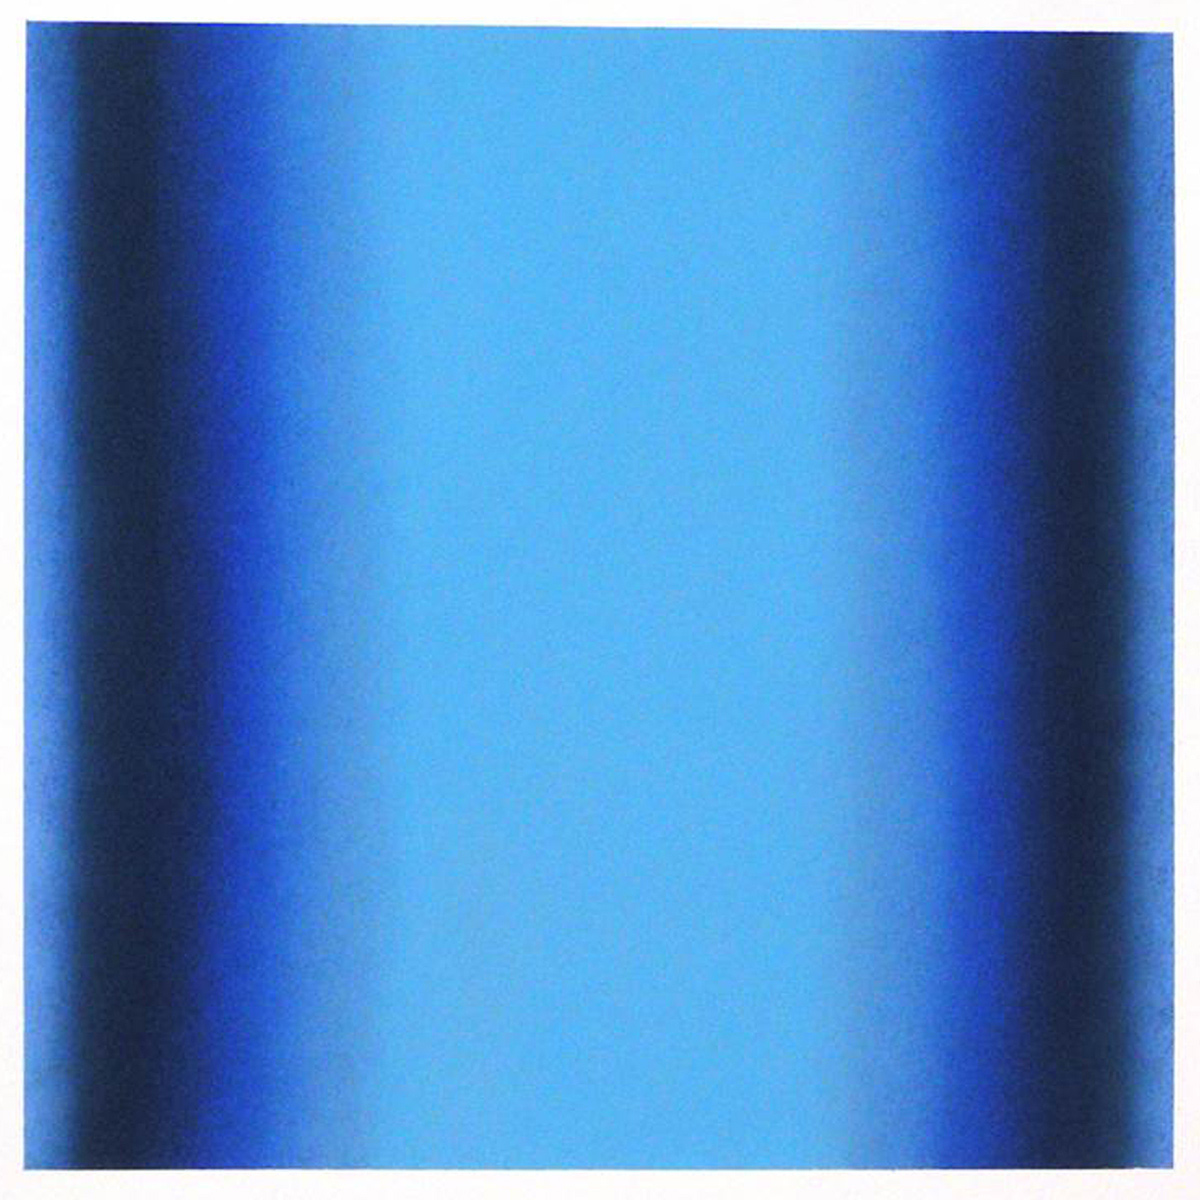 Cool-Light Cerulean-Prussian, Interplay Series, 2012, pastel on paper, image: 14 x 14 in. (36 x 36 cm.), sheet: 30 x 22 in. (76 x 56 cm.)